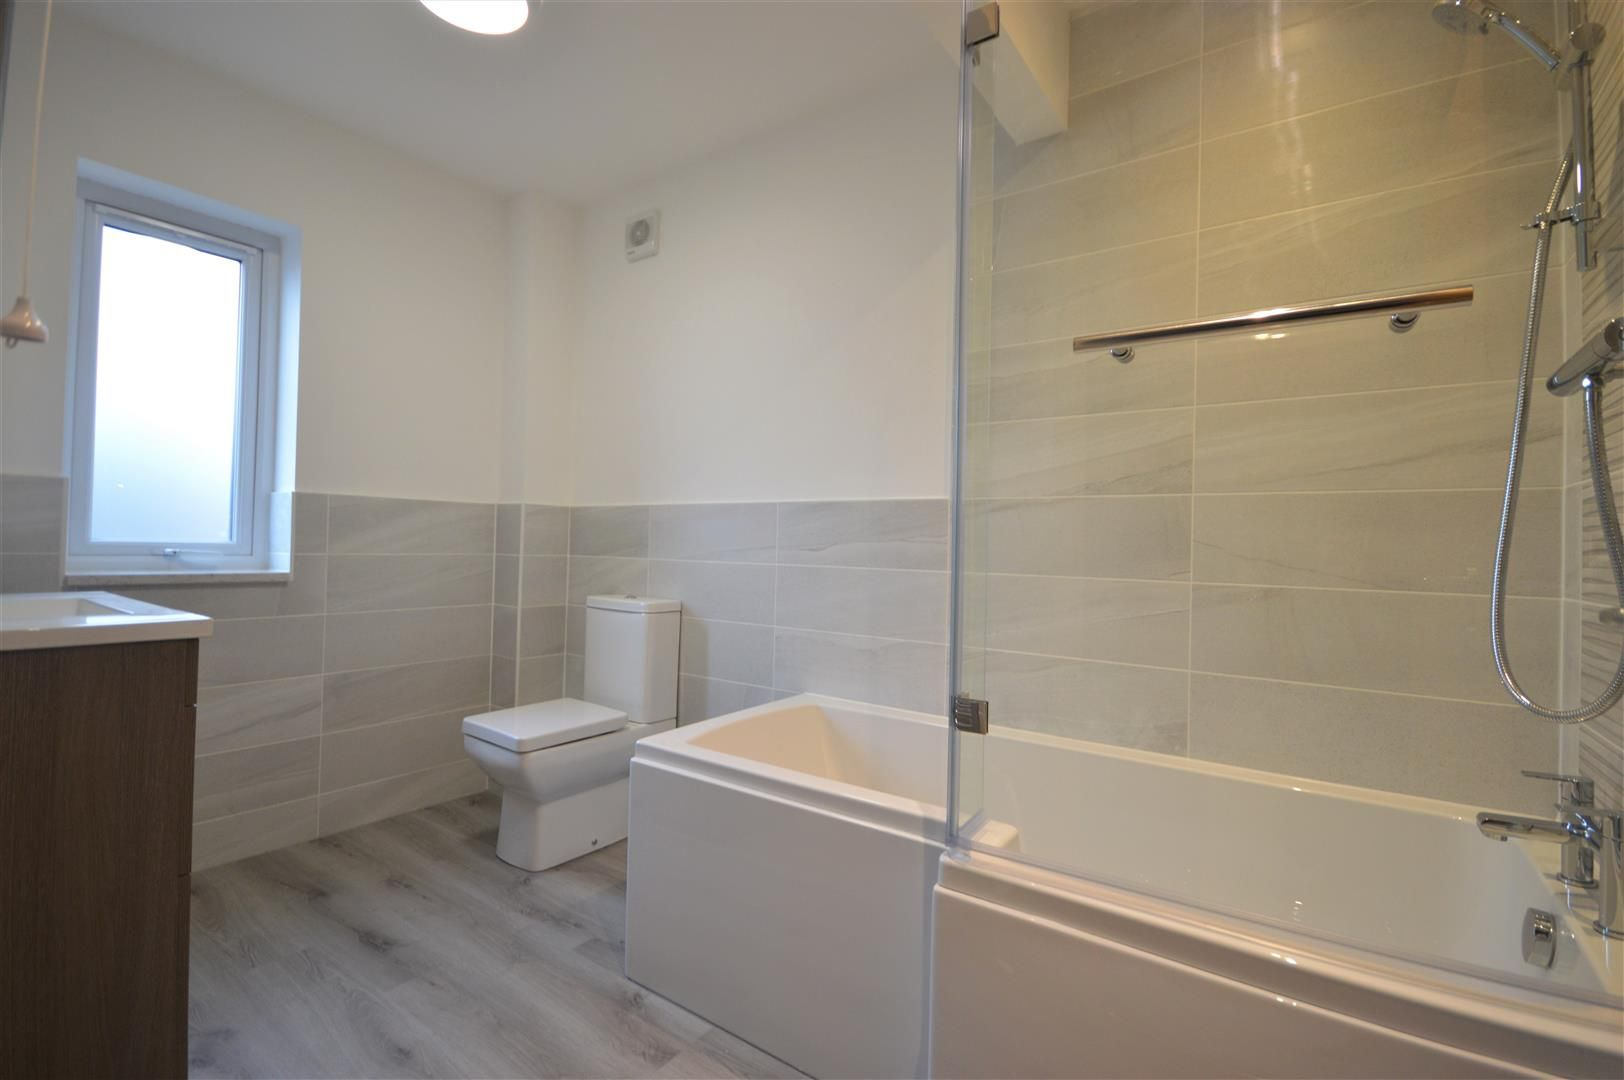 2 bed semi-detached for sale in Leominster 11